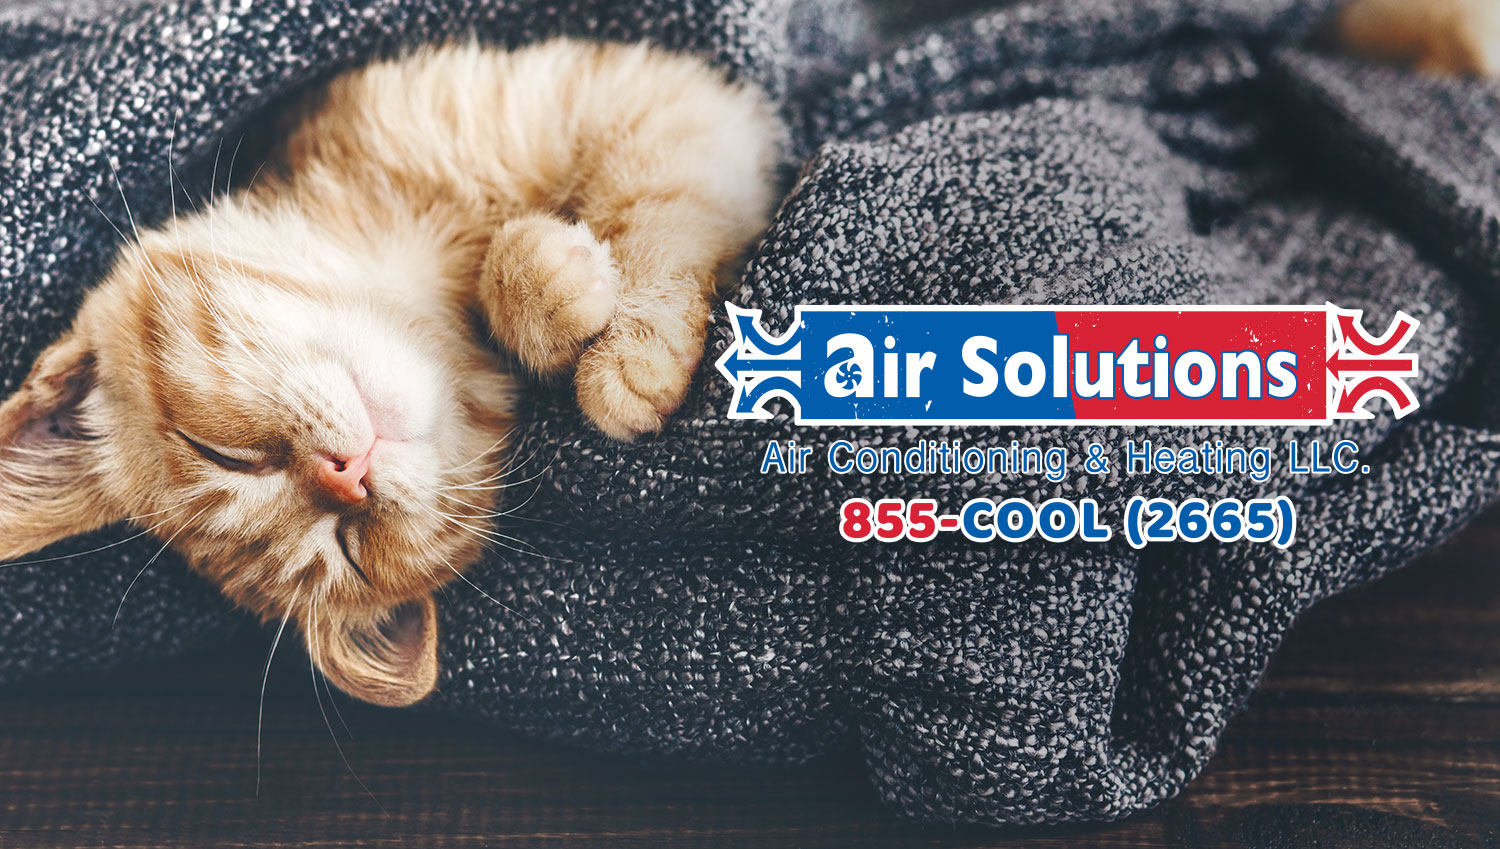 Air Solutions Heating & Air Conditioning | Foster Design Co.